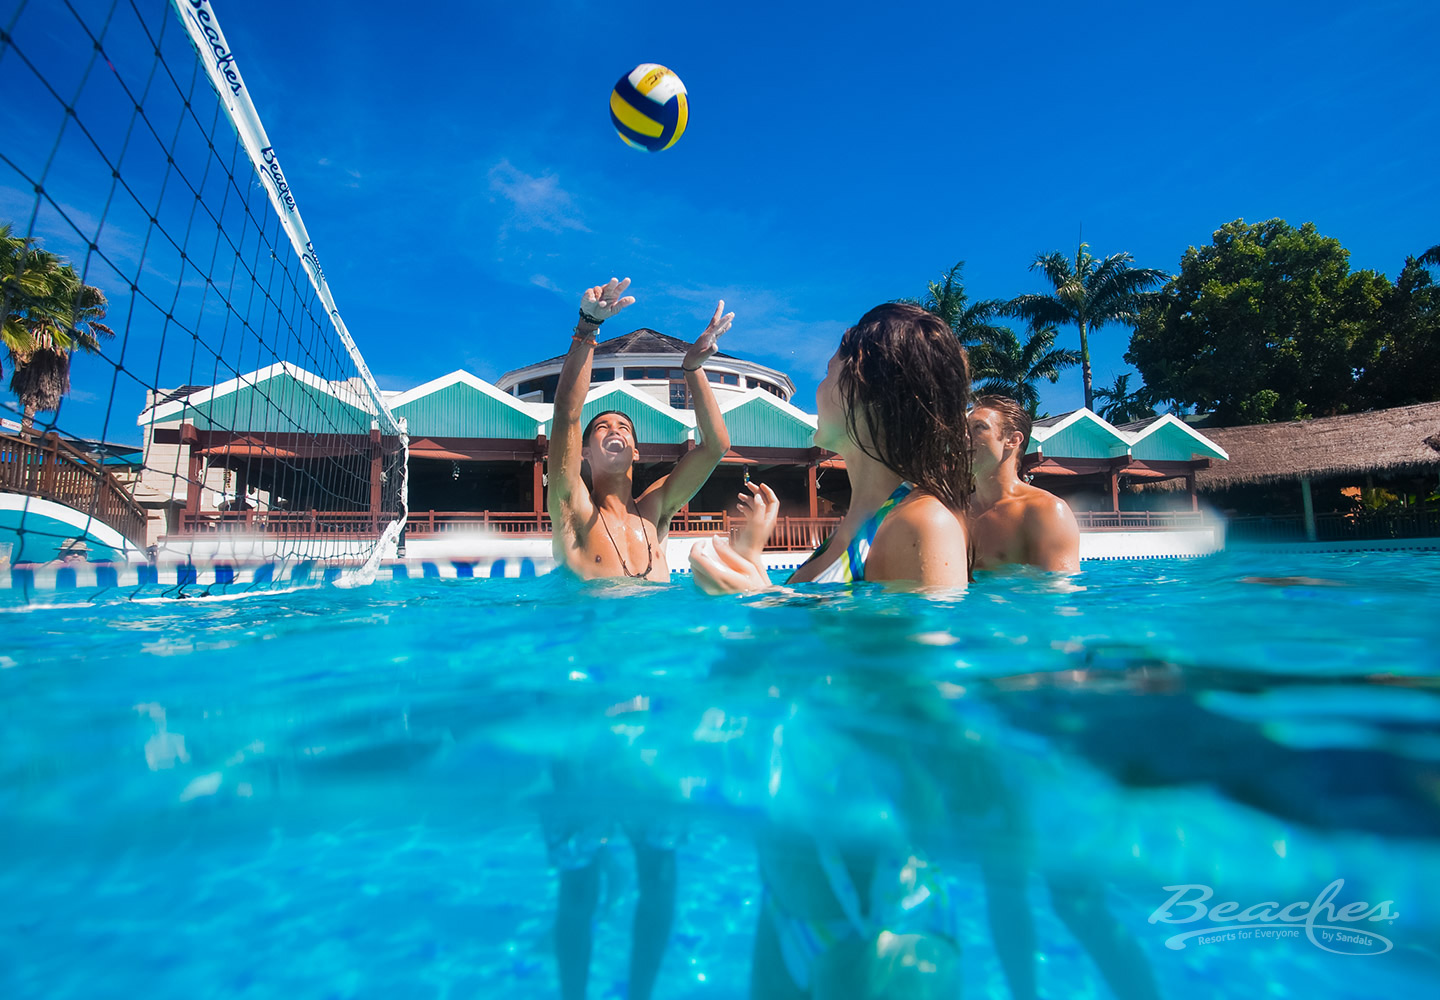 Travel Agency All-Inclusive Resort Beaches Negril 057